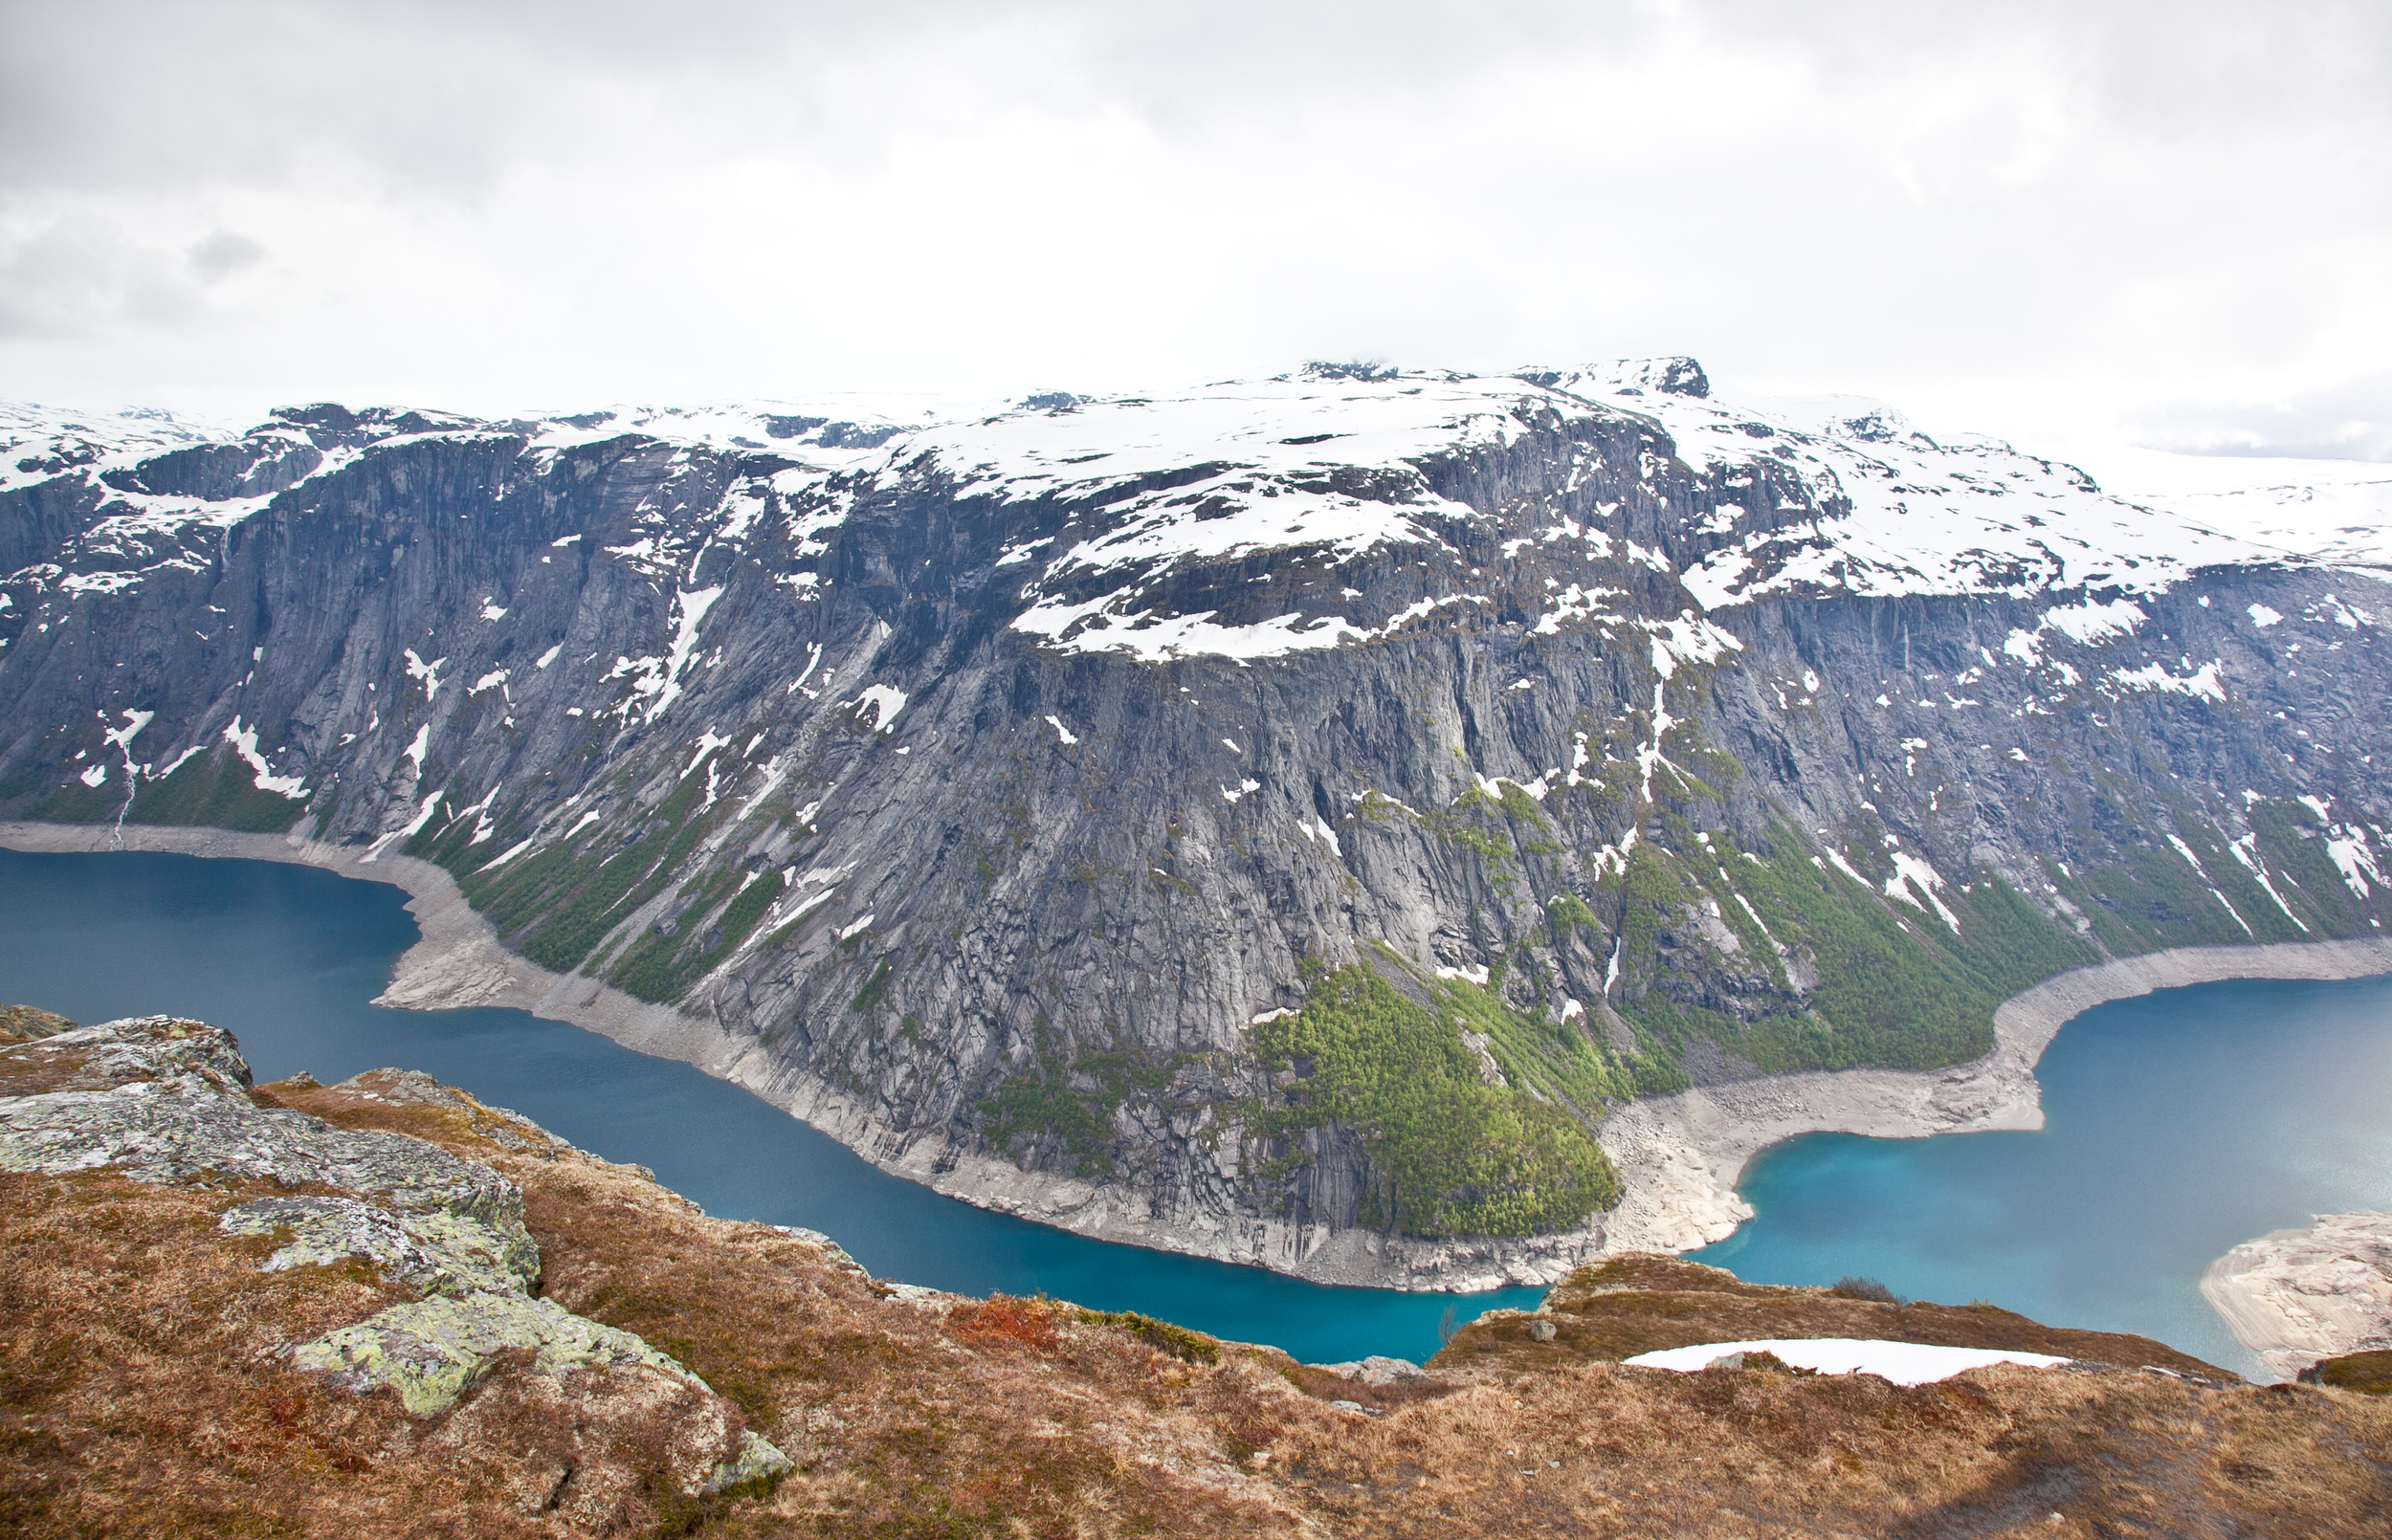 IMG_3833-trolltunga-norway-hiking-trisa-taro.jpg